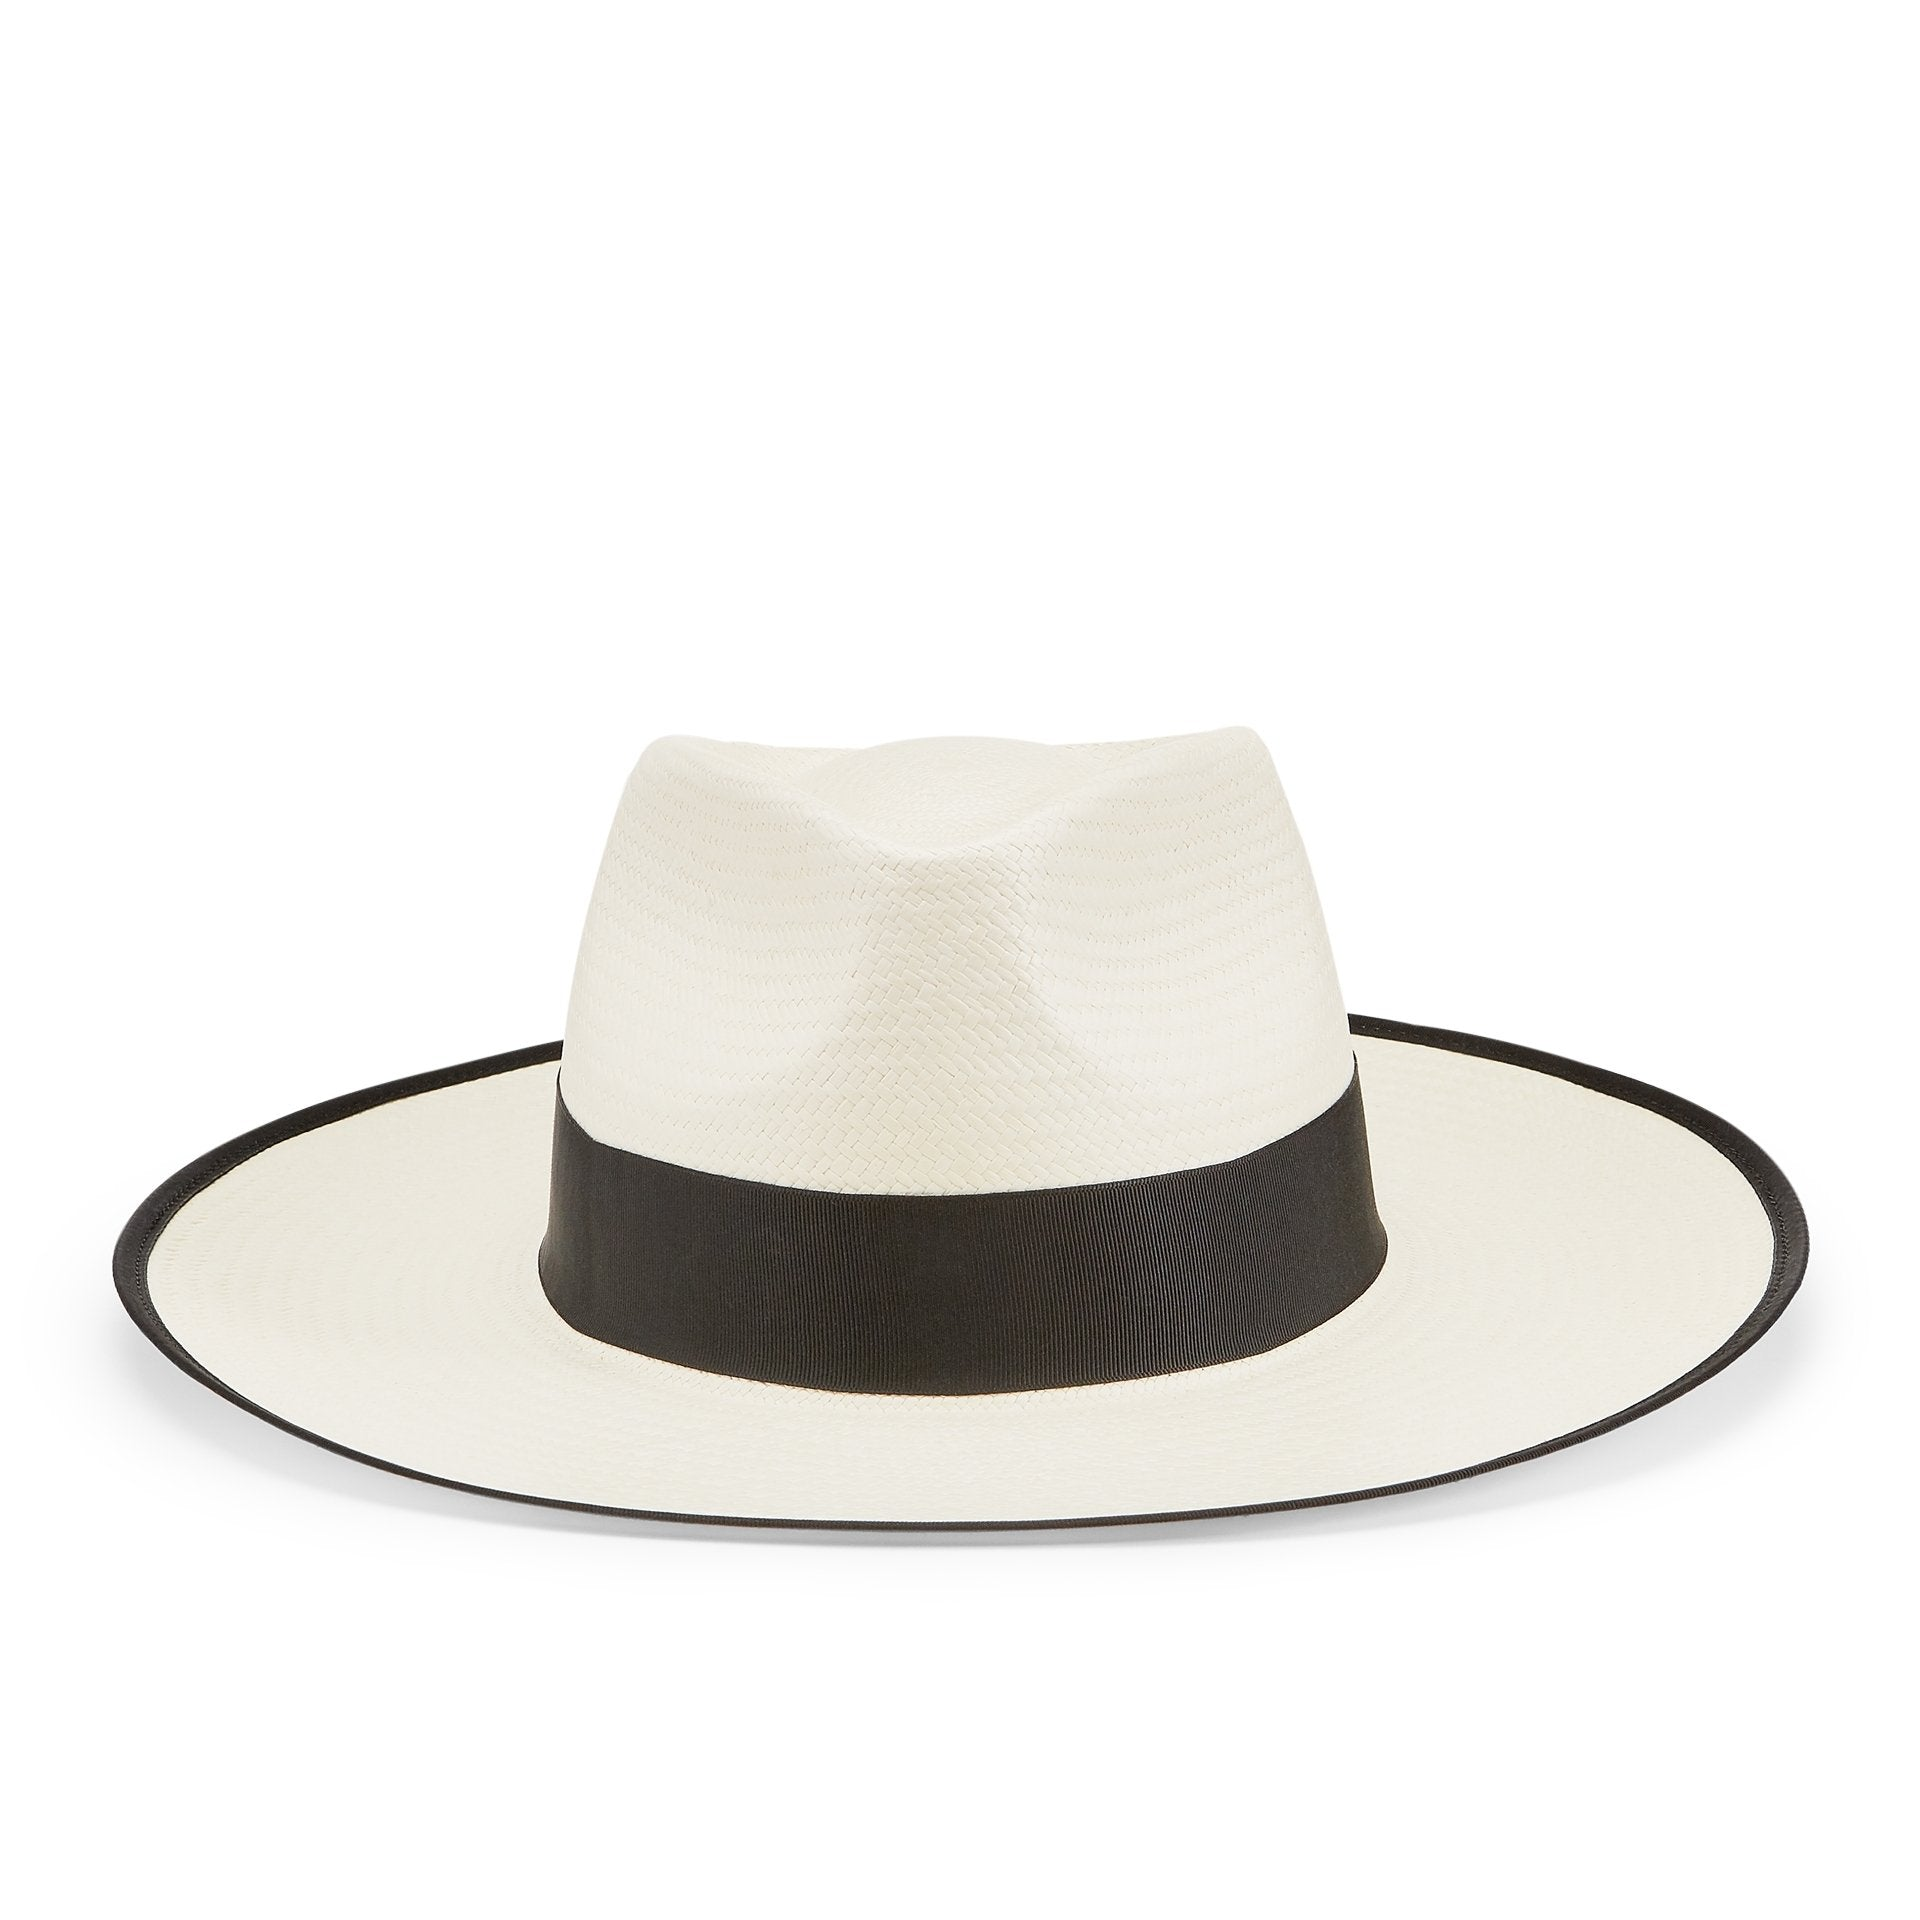 Casablanca Panama - Women's hats - Lock & Co. Hatters London UK